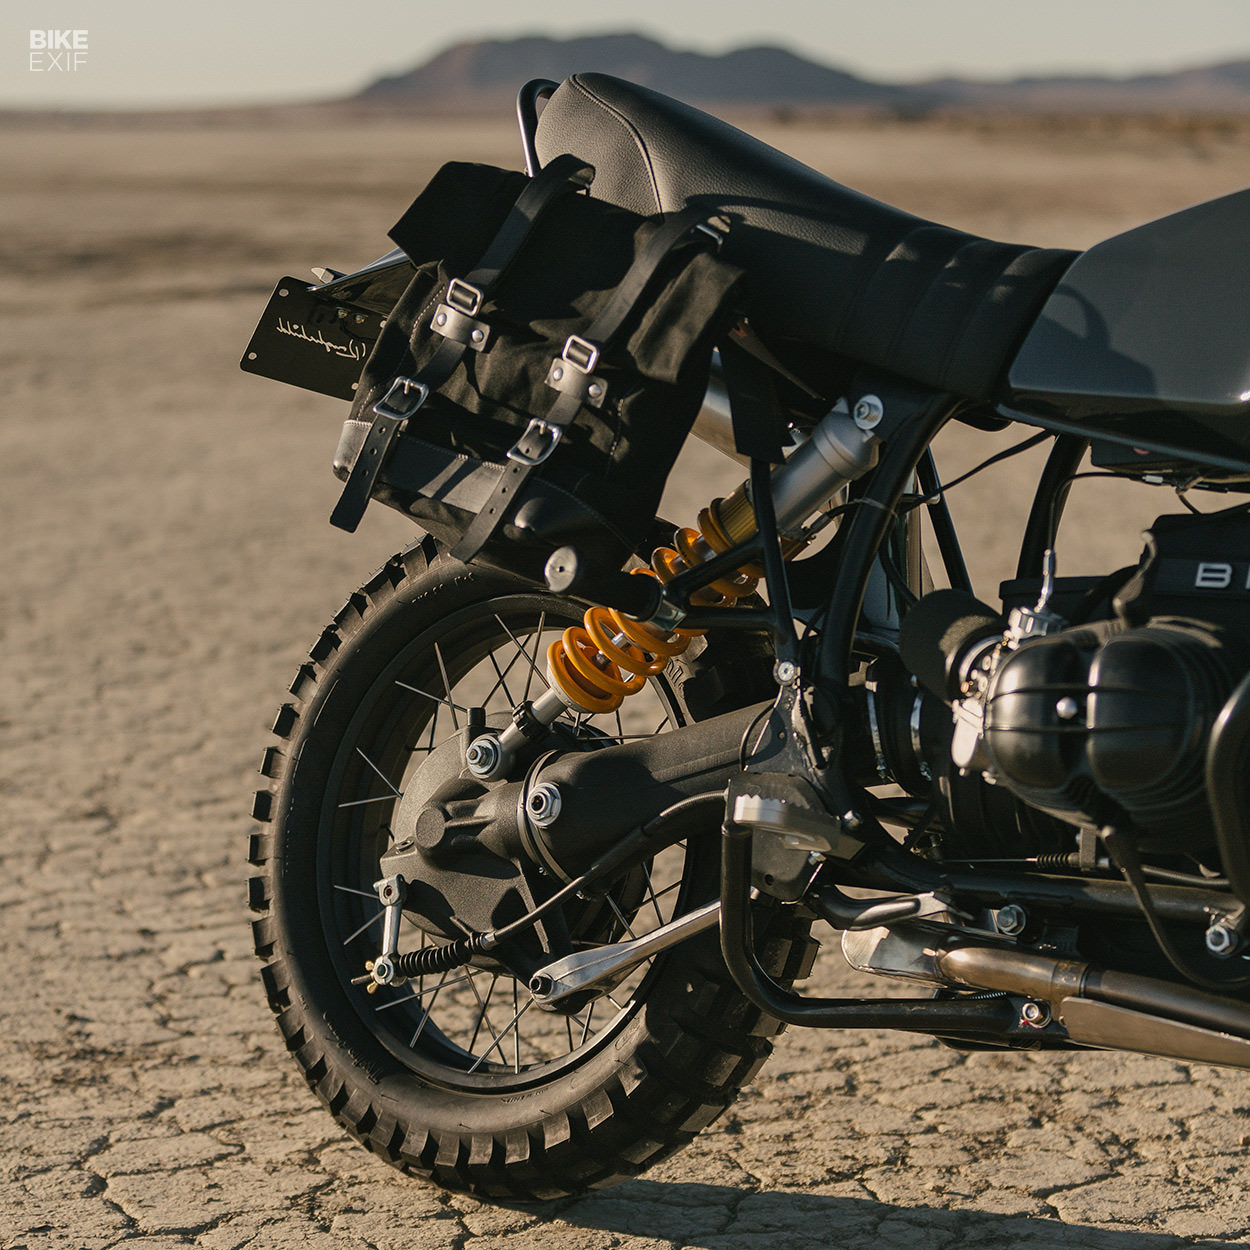 R100xe The Bmw R80g S Evolution We Deserve Bike Exif